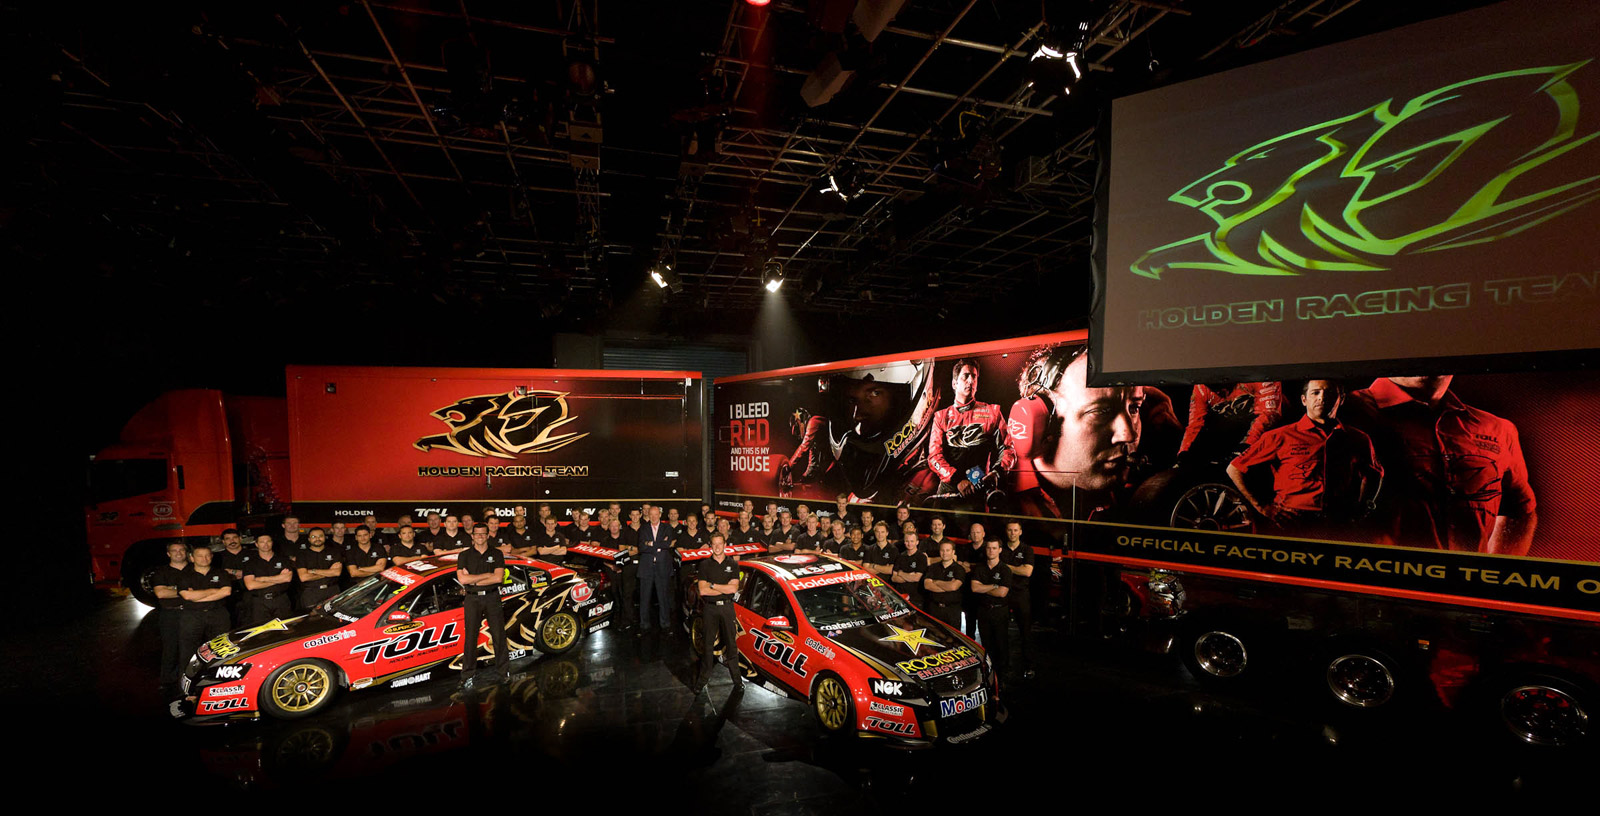 """I Bleed Red and This is My House"" - Holden Racing Team launches 2012 marketing campaign"